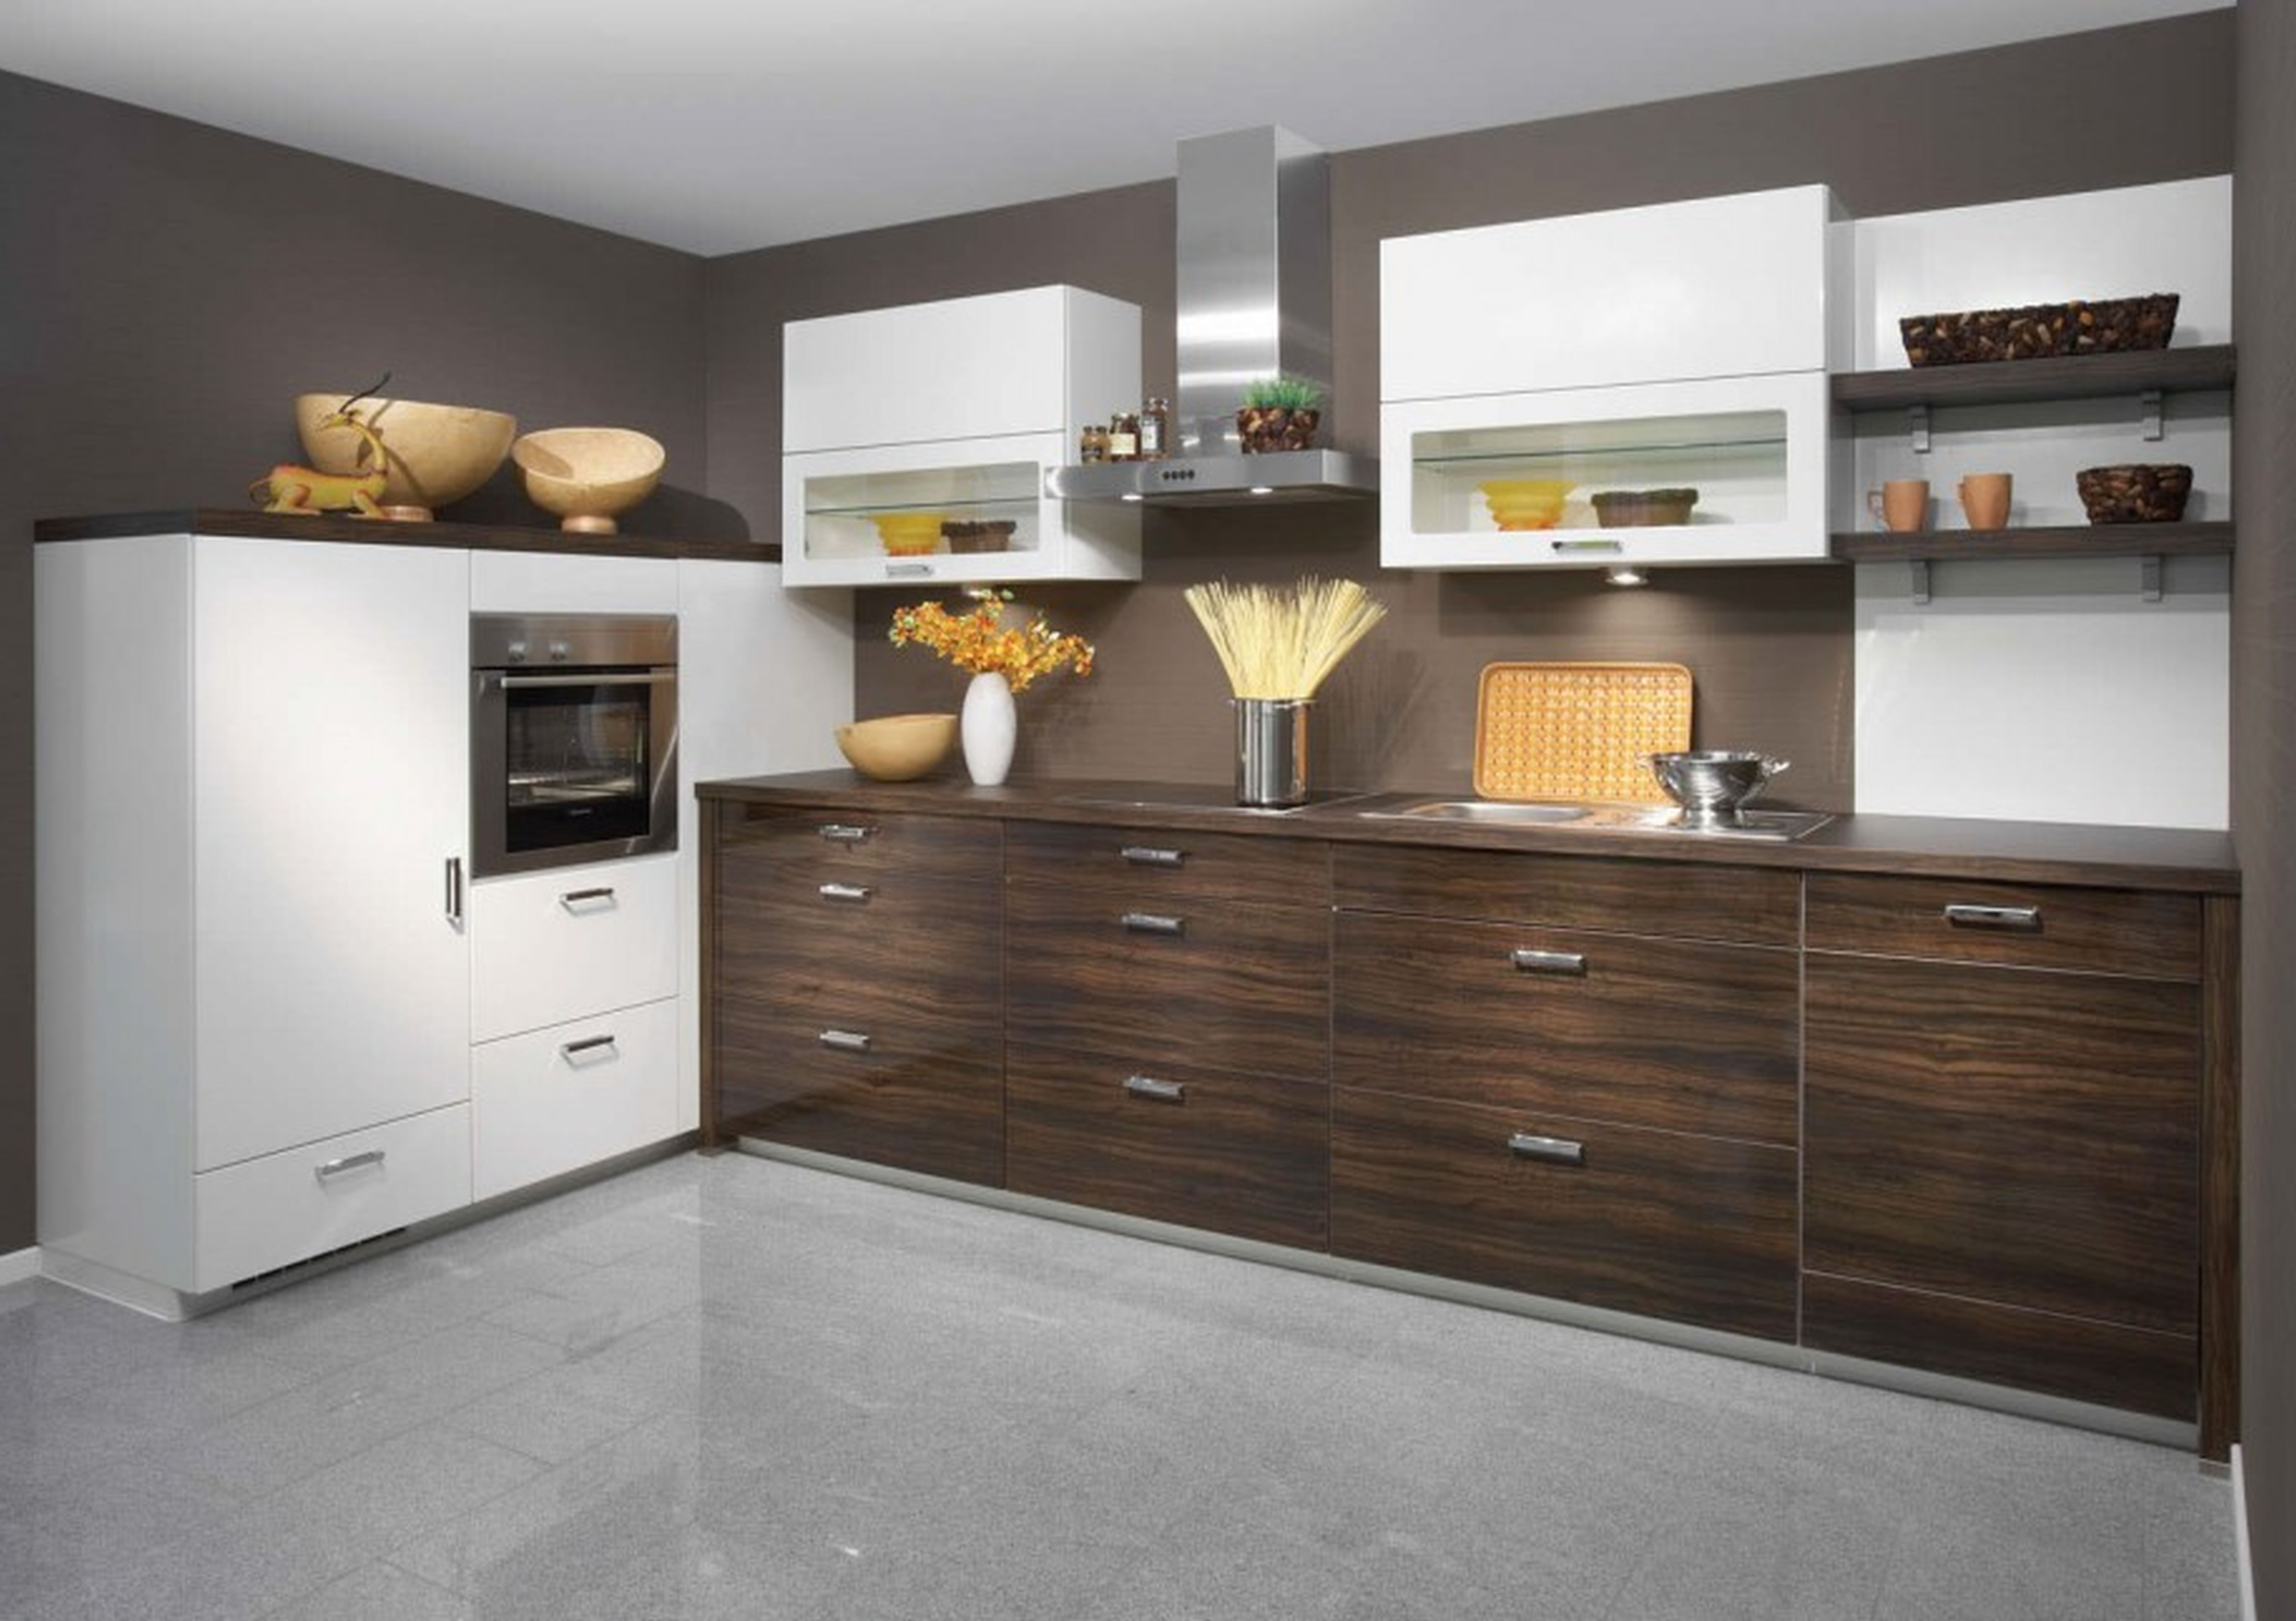 Cost Of Modular Kitchen Pictures Of Modular Kitchen Small Indian Kitchen  Design L Shaped Modular Kitchen